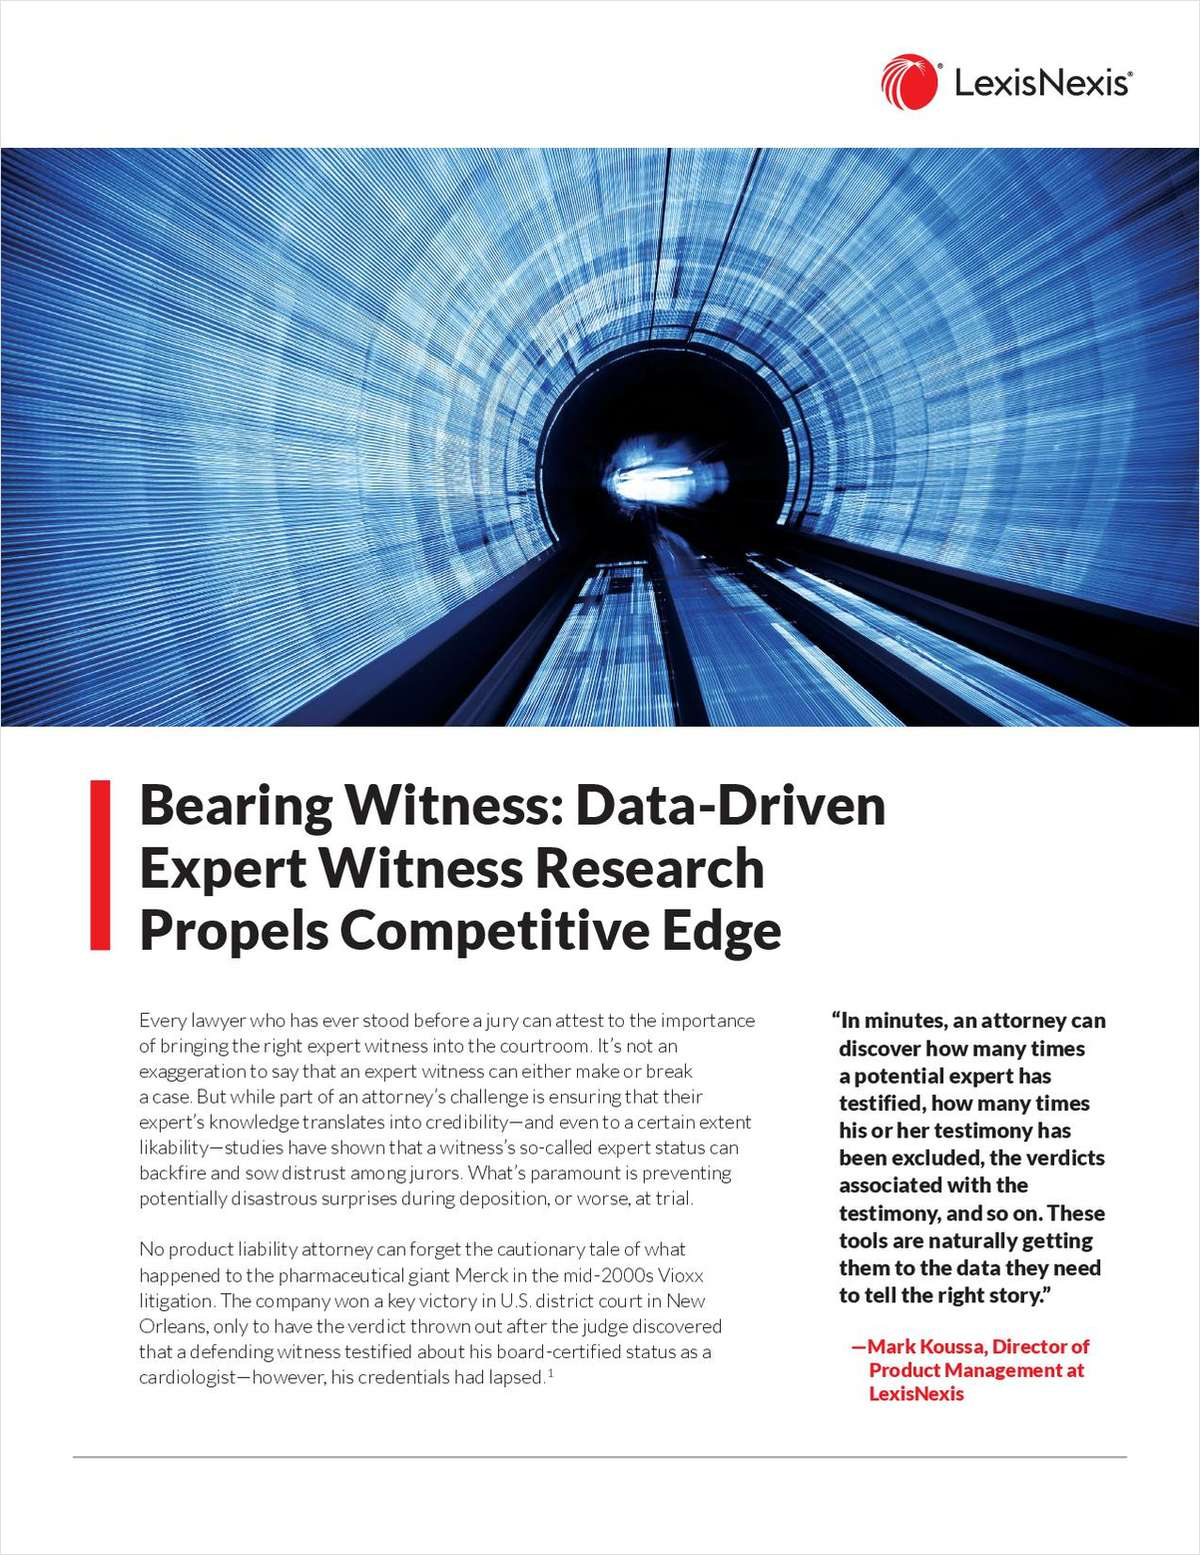 Bearing Witness: Data-Driven Expert Witness Research Propels Competitive Edge